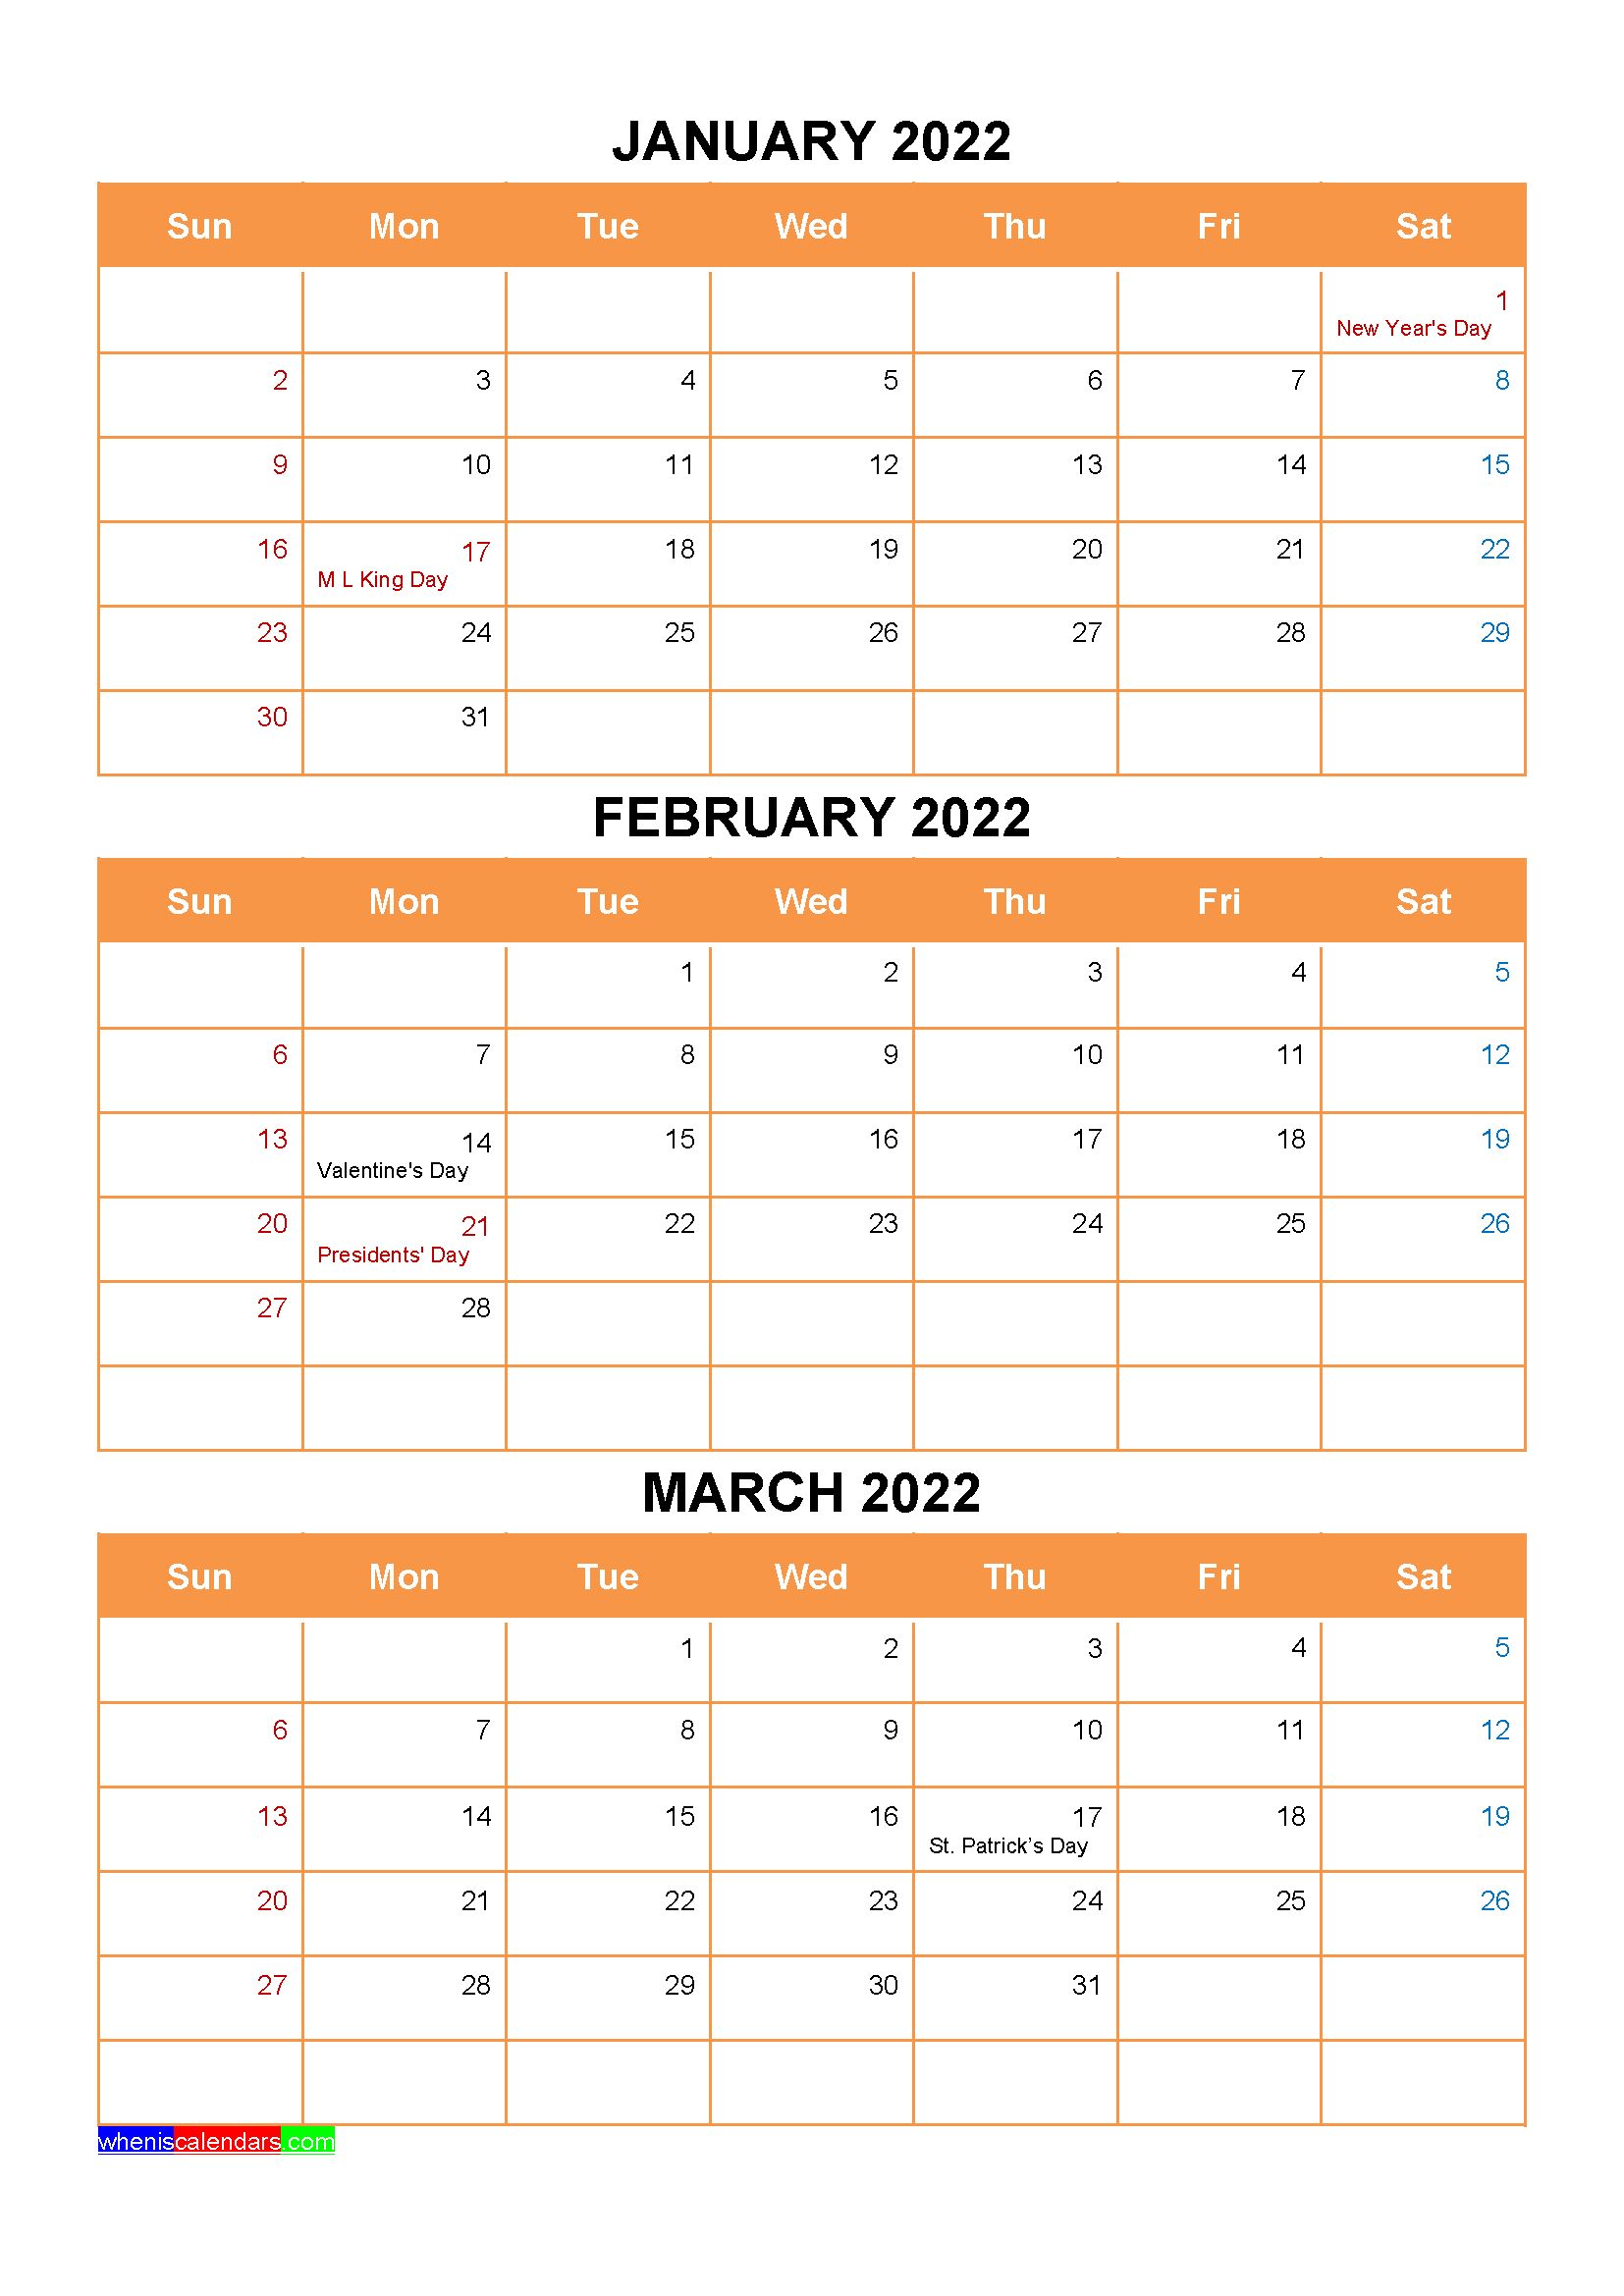 March 2022 Holiday Calendar.January February March 2022 Calendar With Holidays Printable Four Quarters Calendar Printables Printable Calendar July Holiday Words